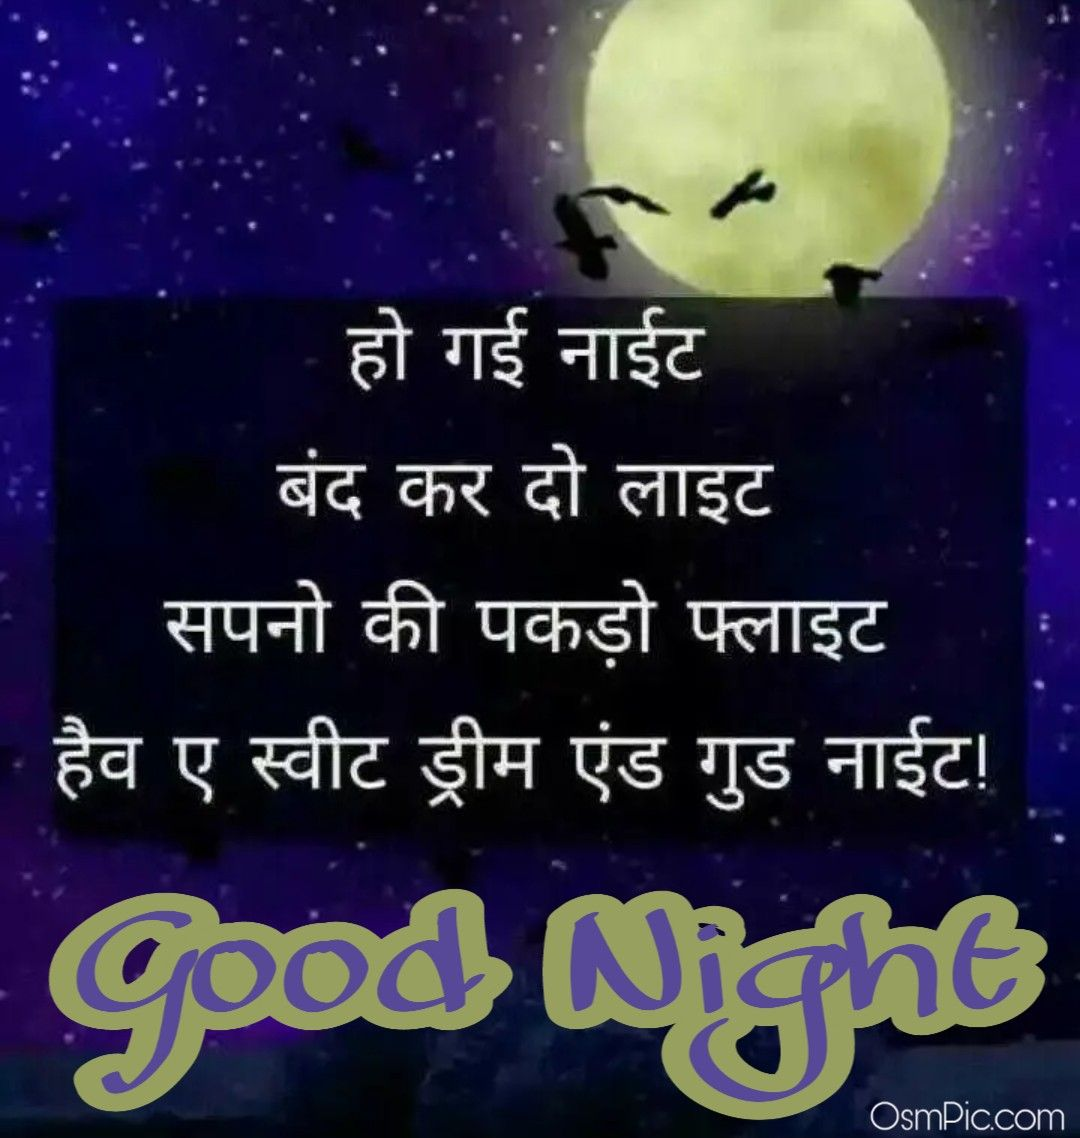 8 Funny Good Night Quotes In Hindi Reference Uploading Status on Facebook Whatsapp is one of the best ways to convey regards or wishes to everyone in your contact single-handedly.